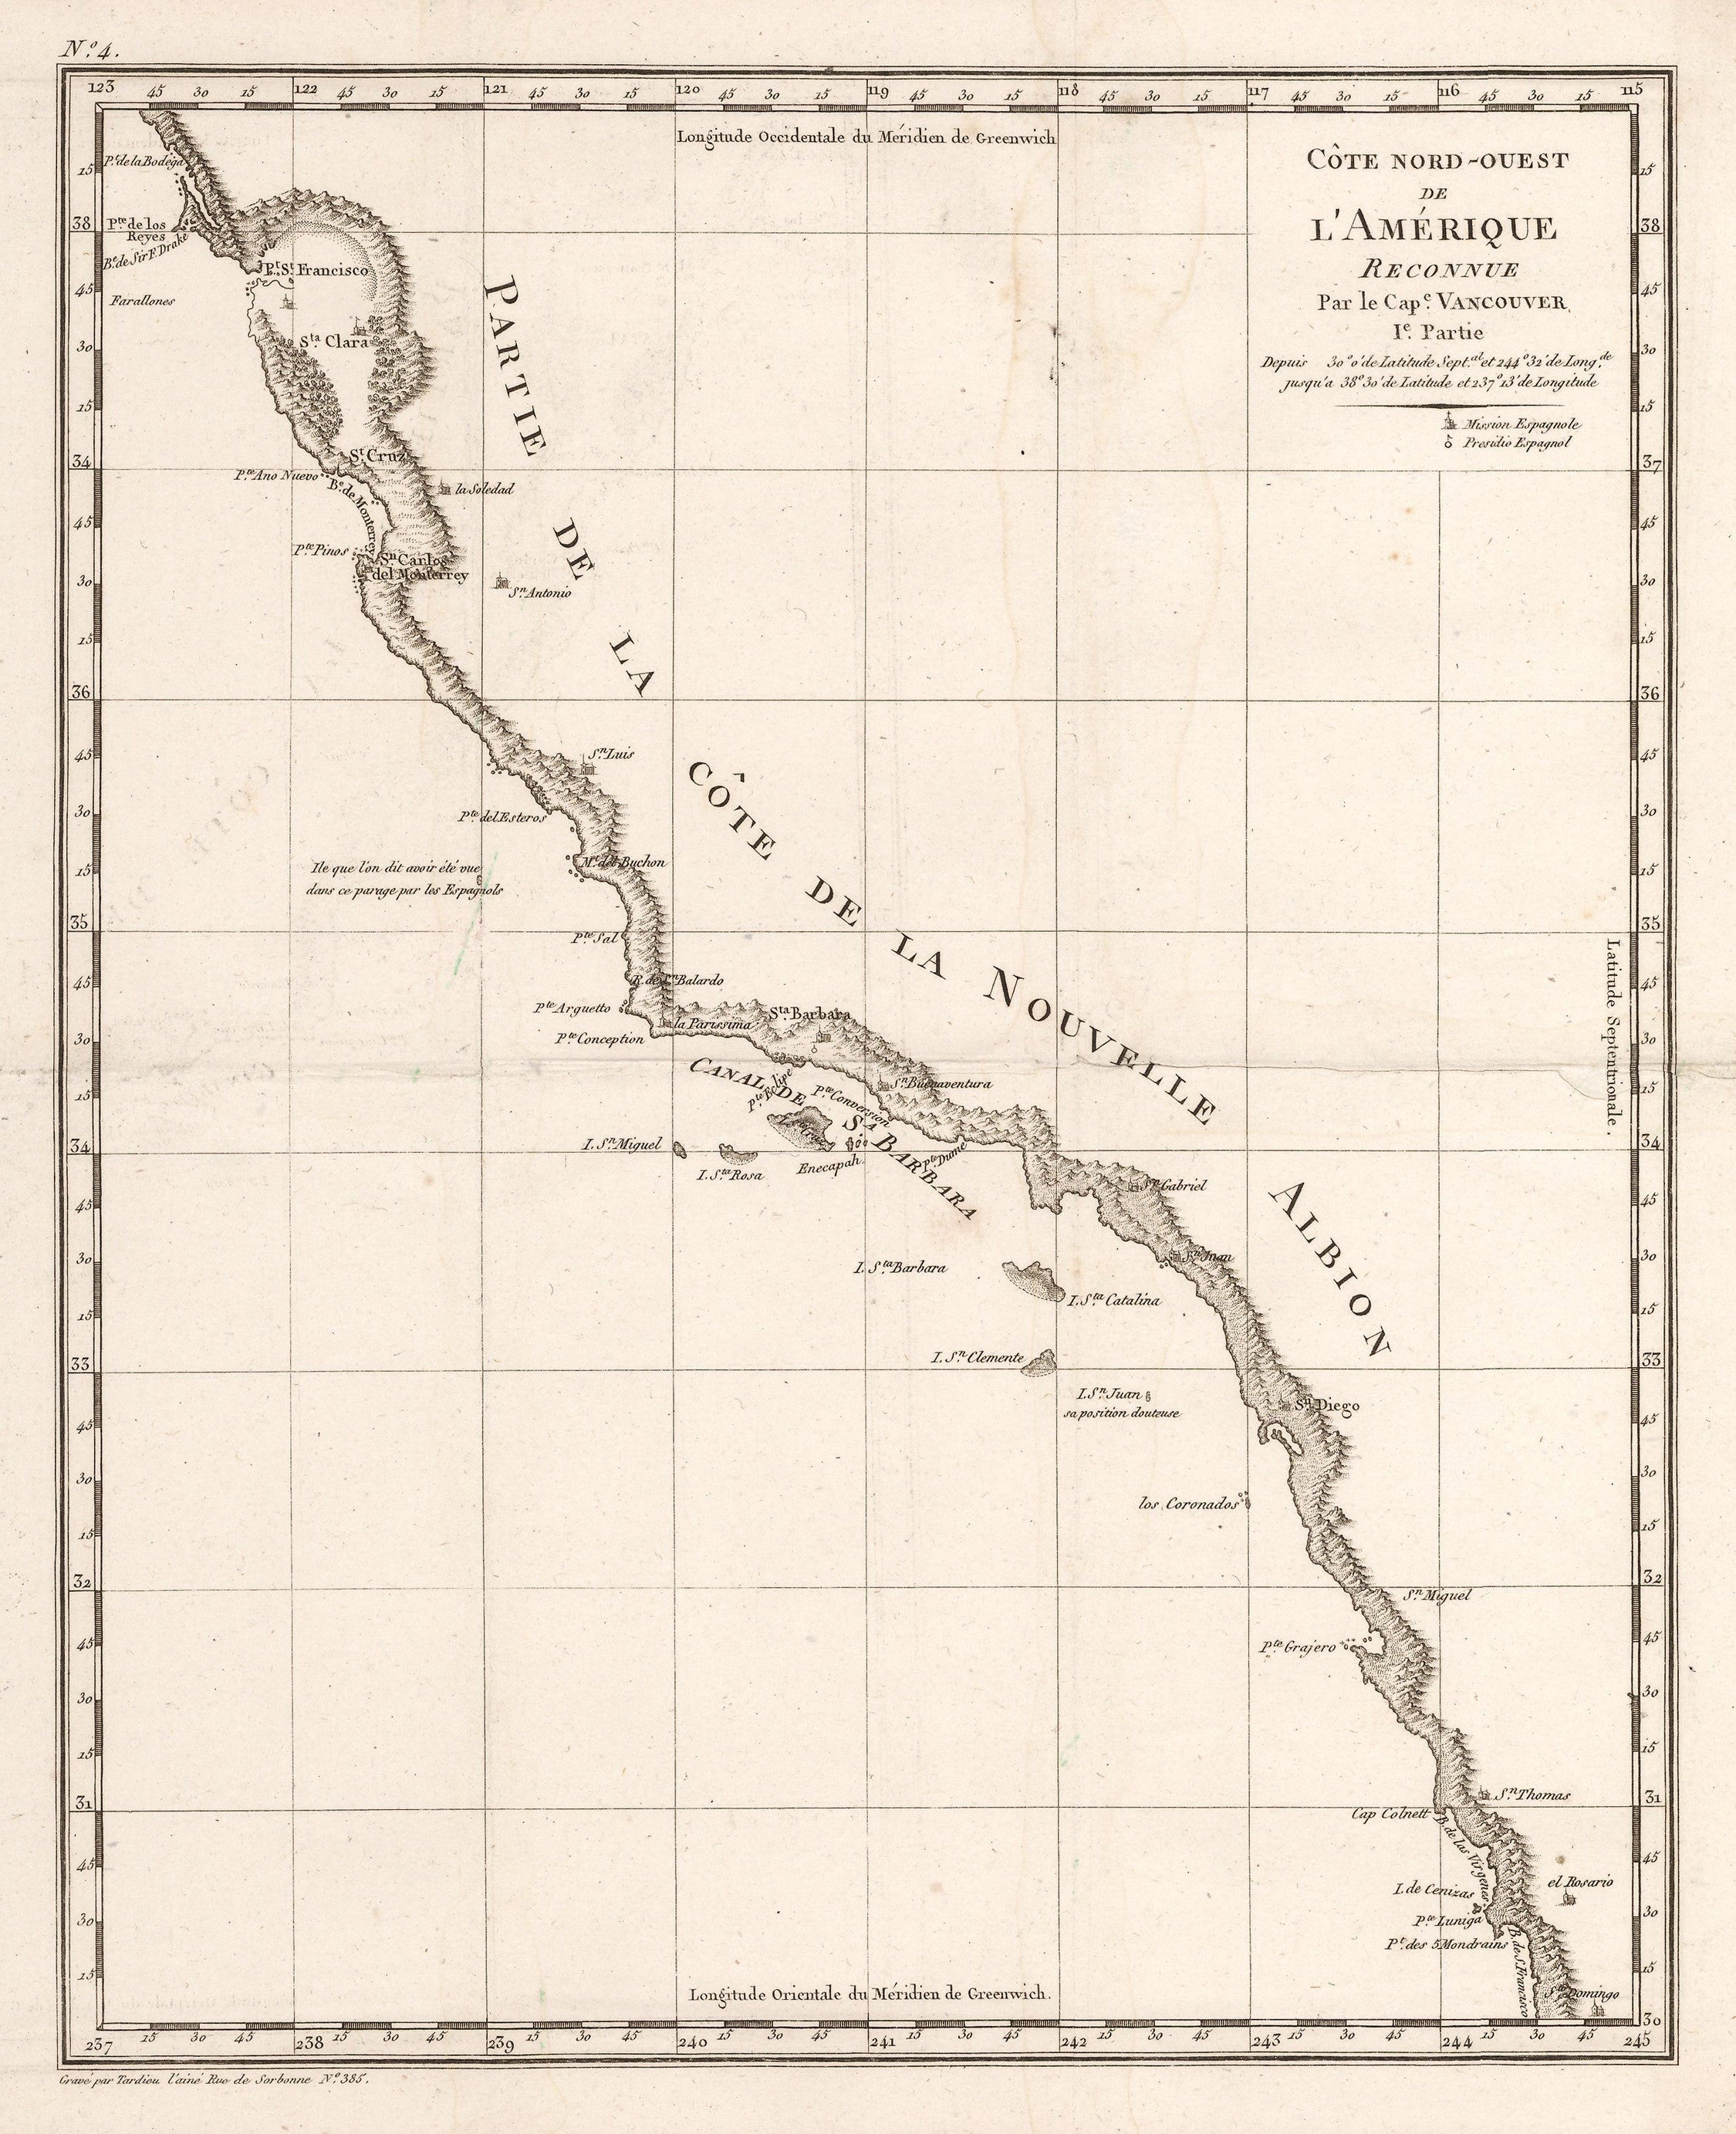 Antique Map of the California coast from Santa Domingo to San Francisco